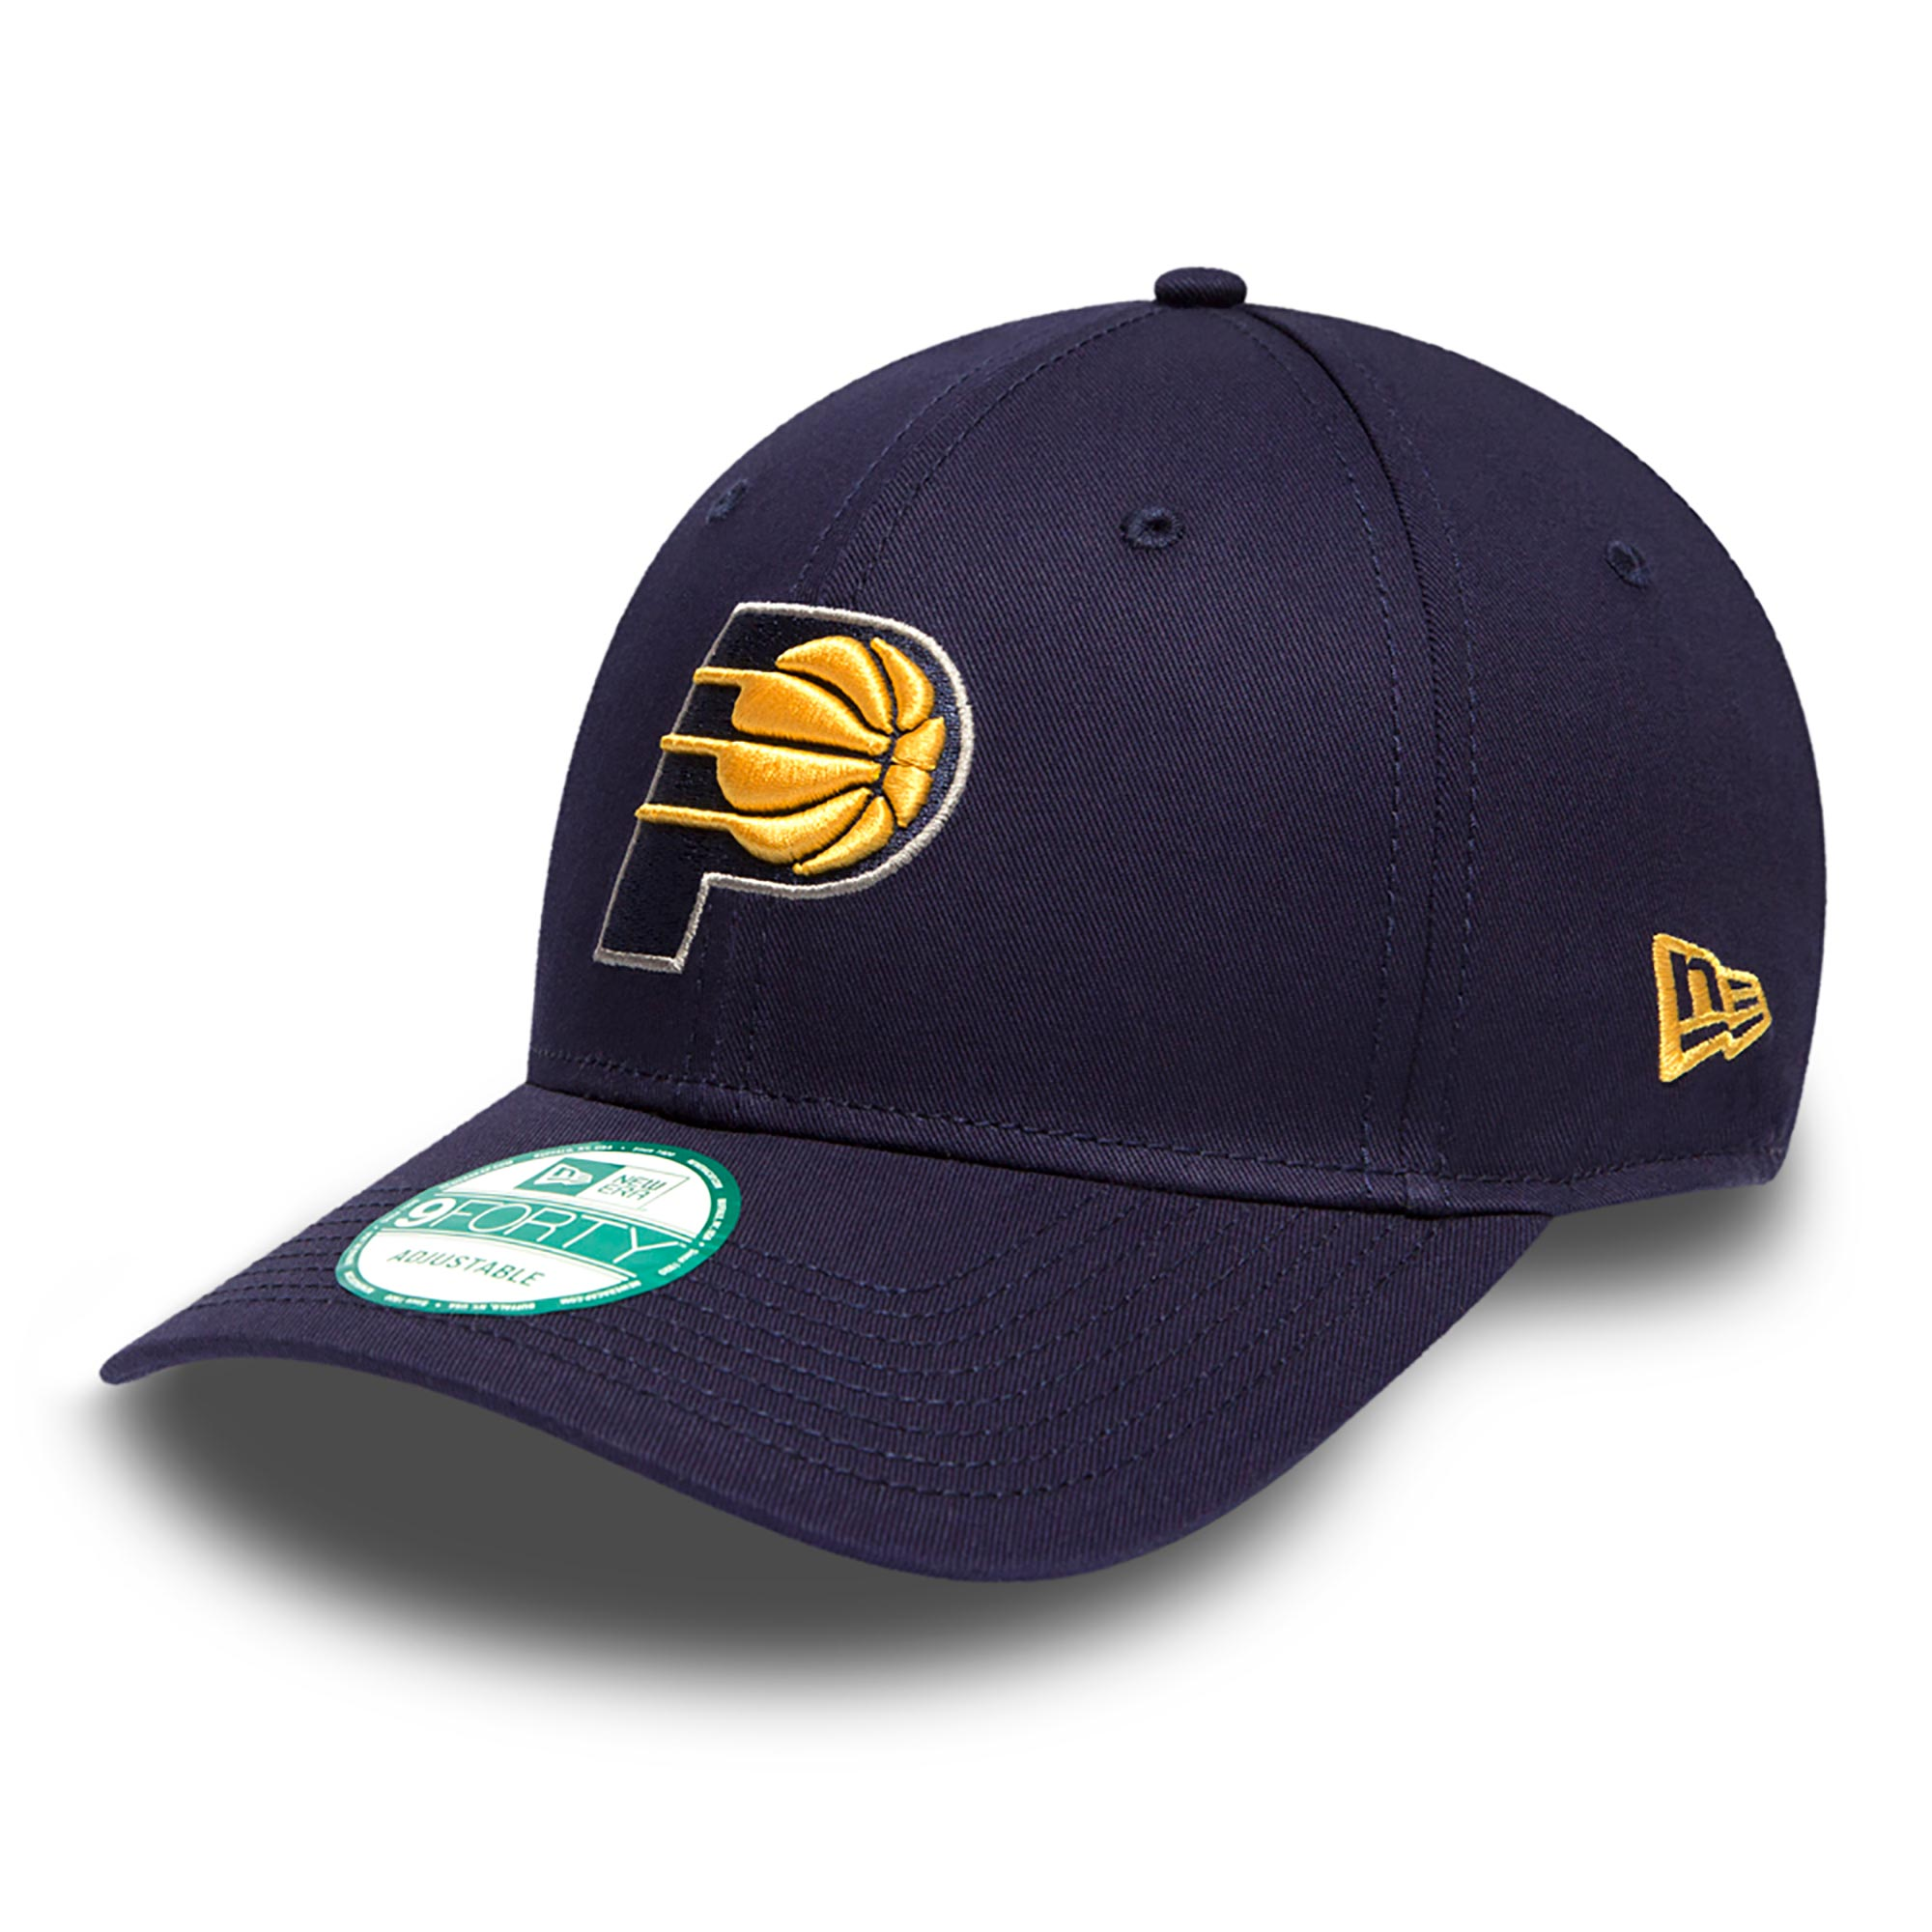 Indiana Pacers New Era Basic 9FORTY Adujstable Cap